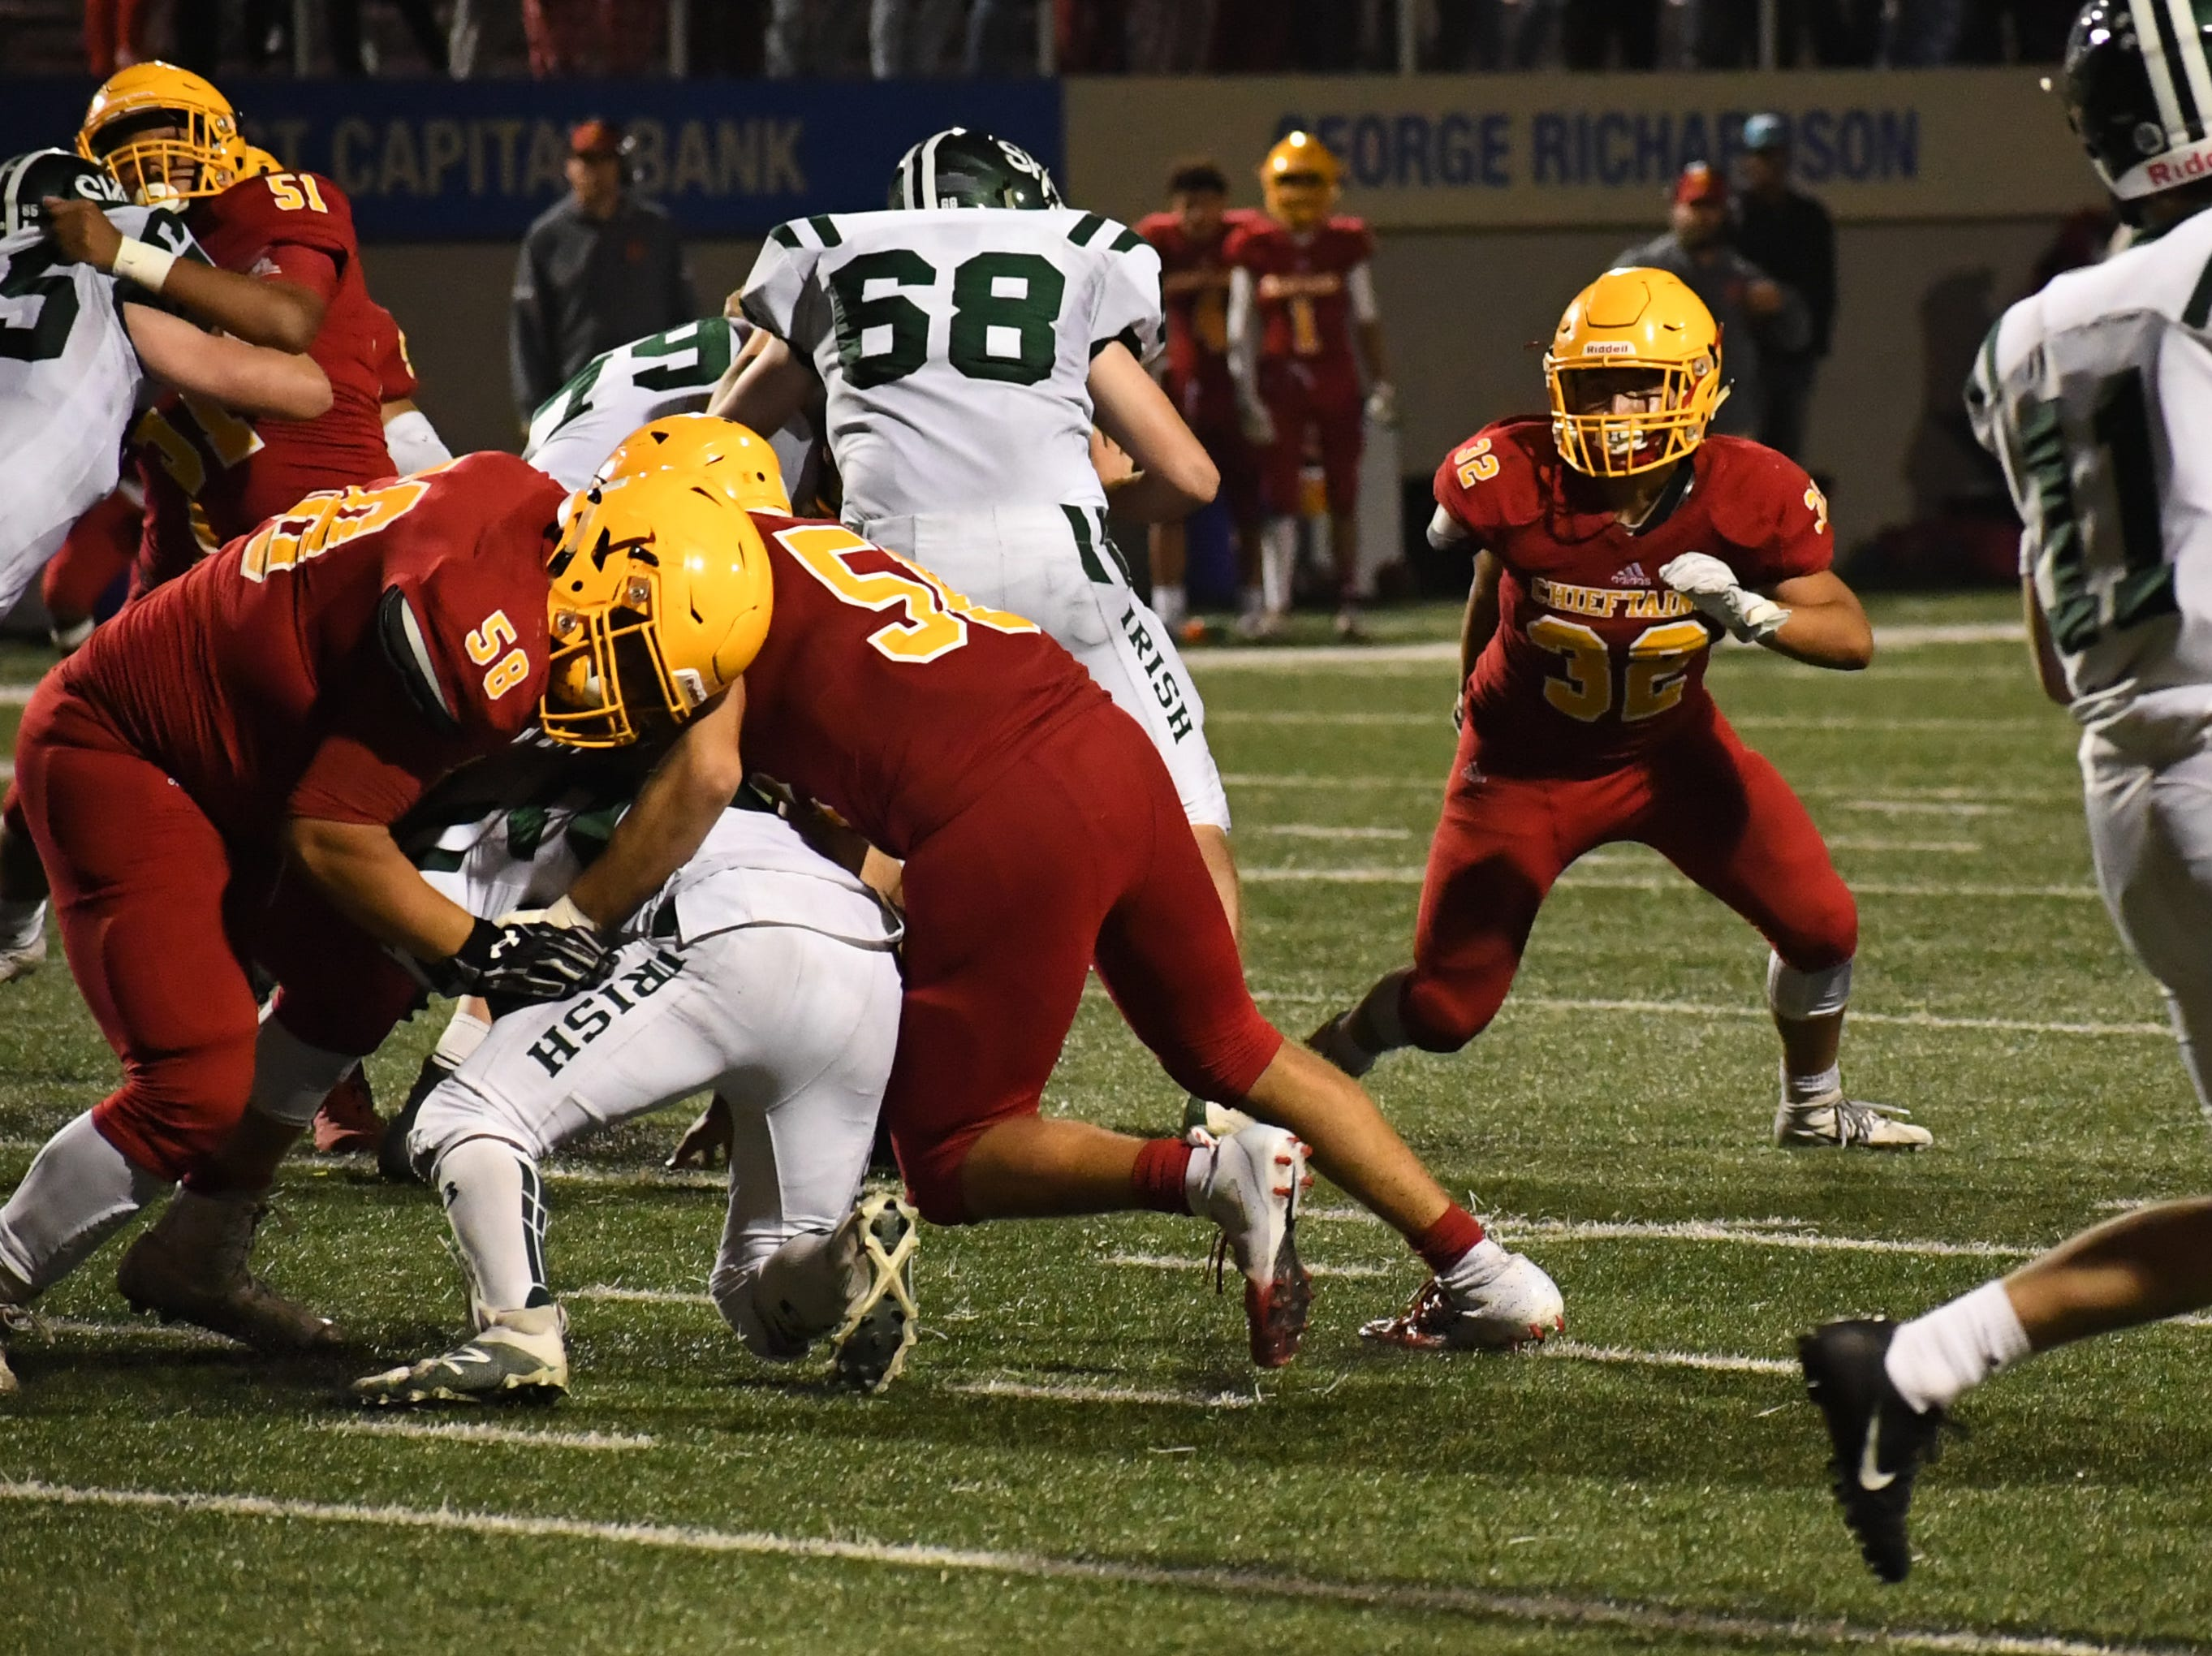 Palma defenders Daniel Cabrera (58) and Jose Velasquez (56) tackle a Sacred Heart Cathedral running back.